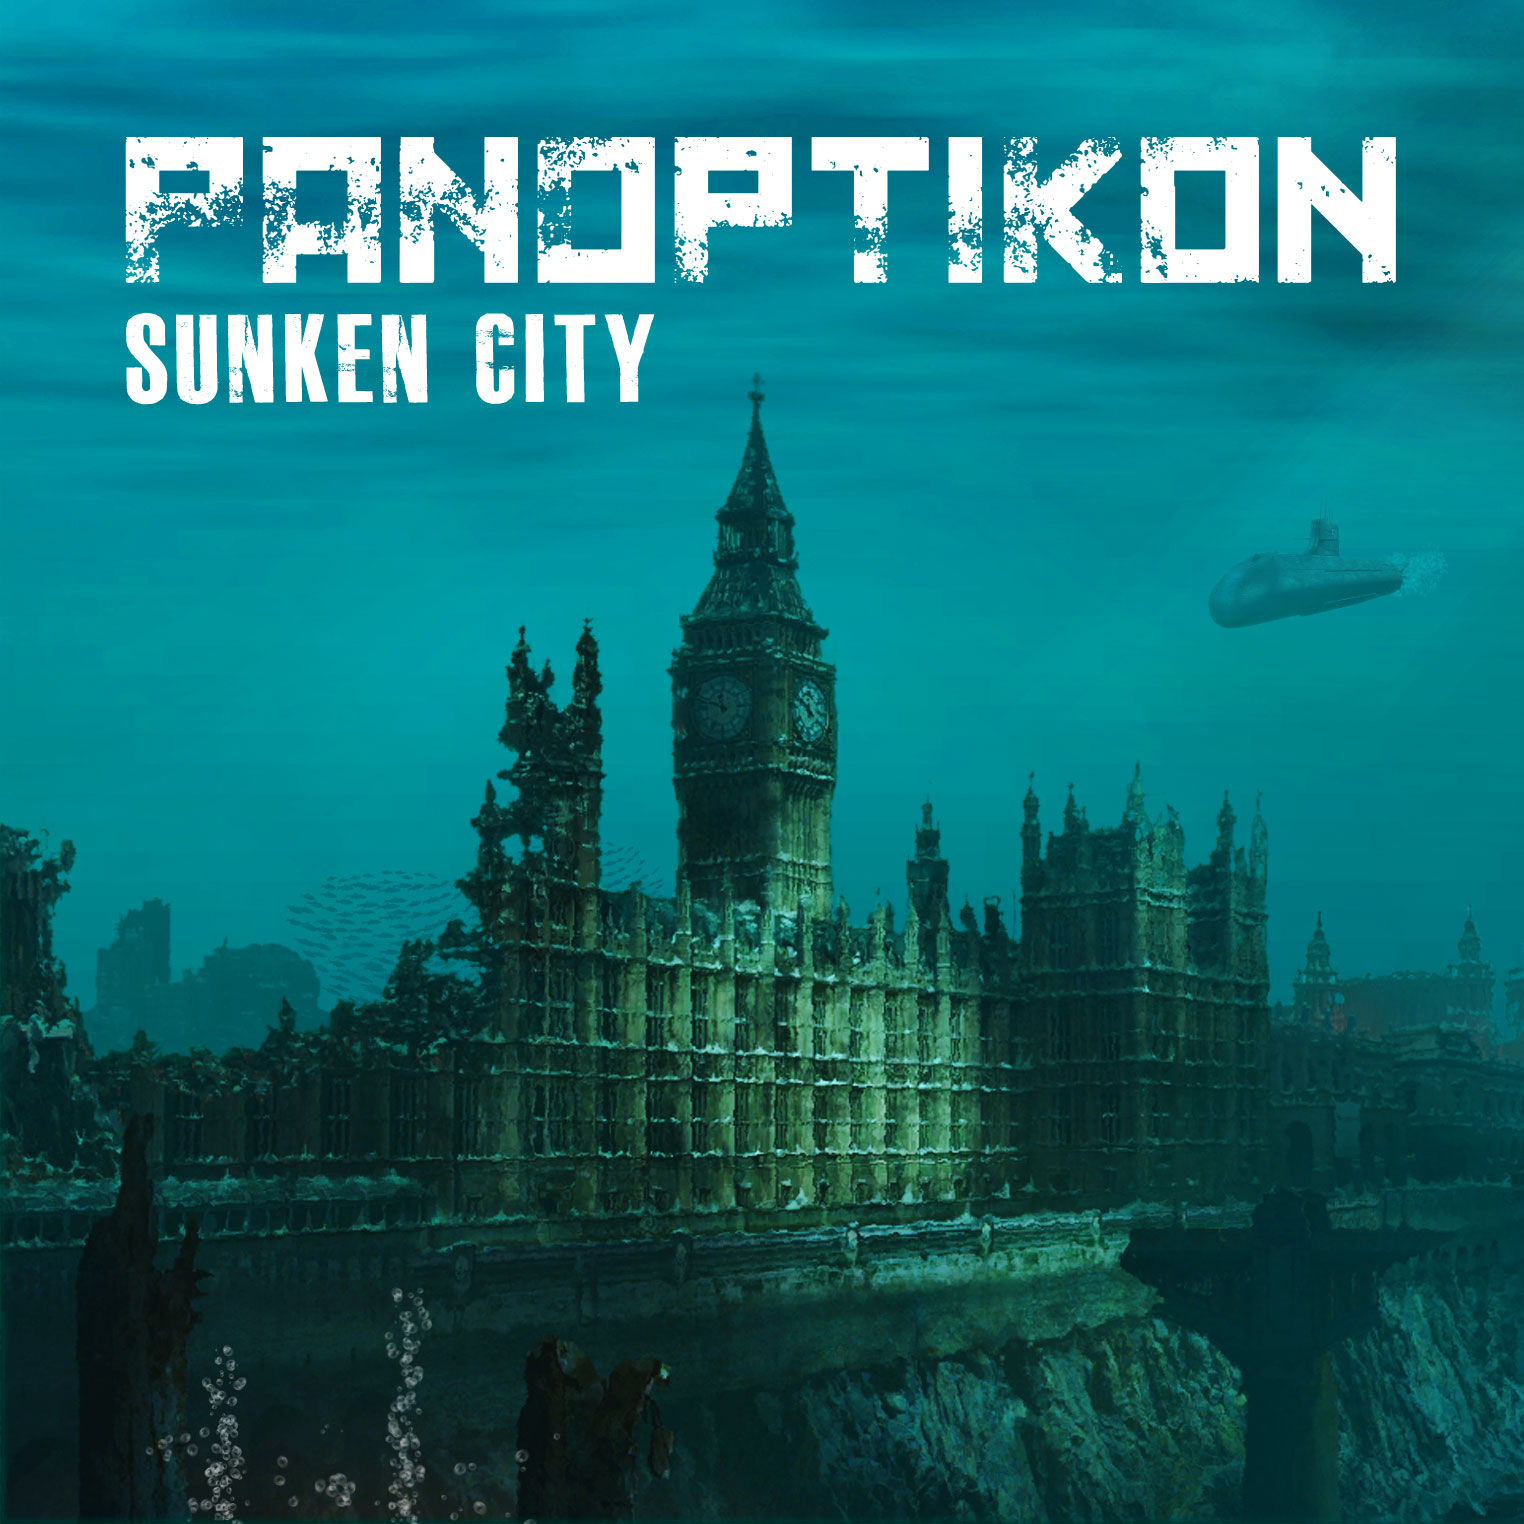 Artwork Sunken City